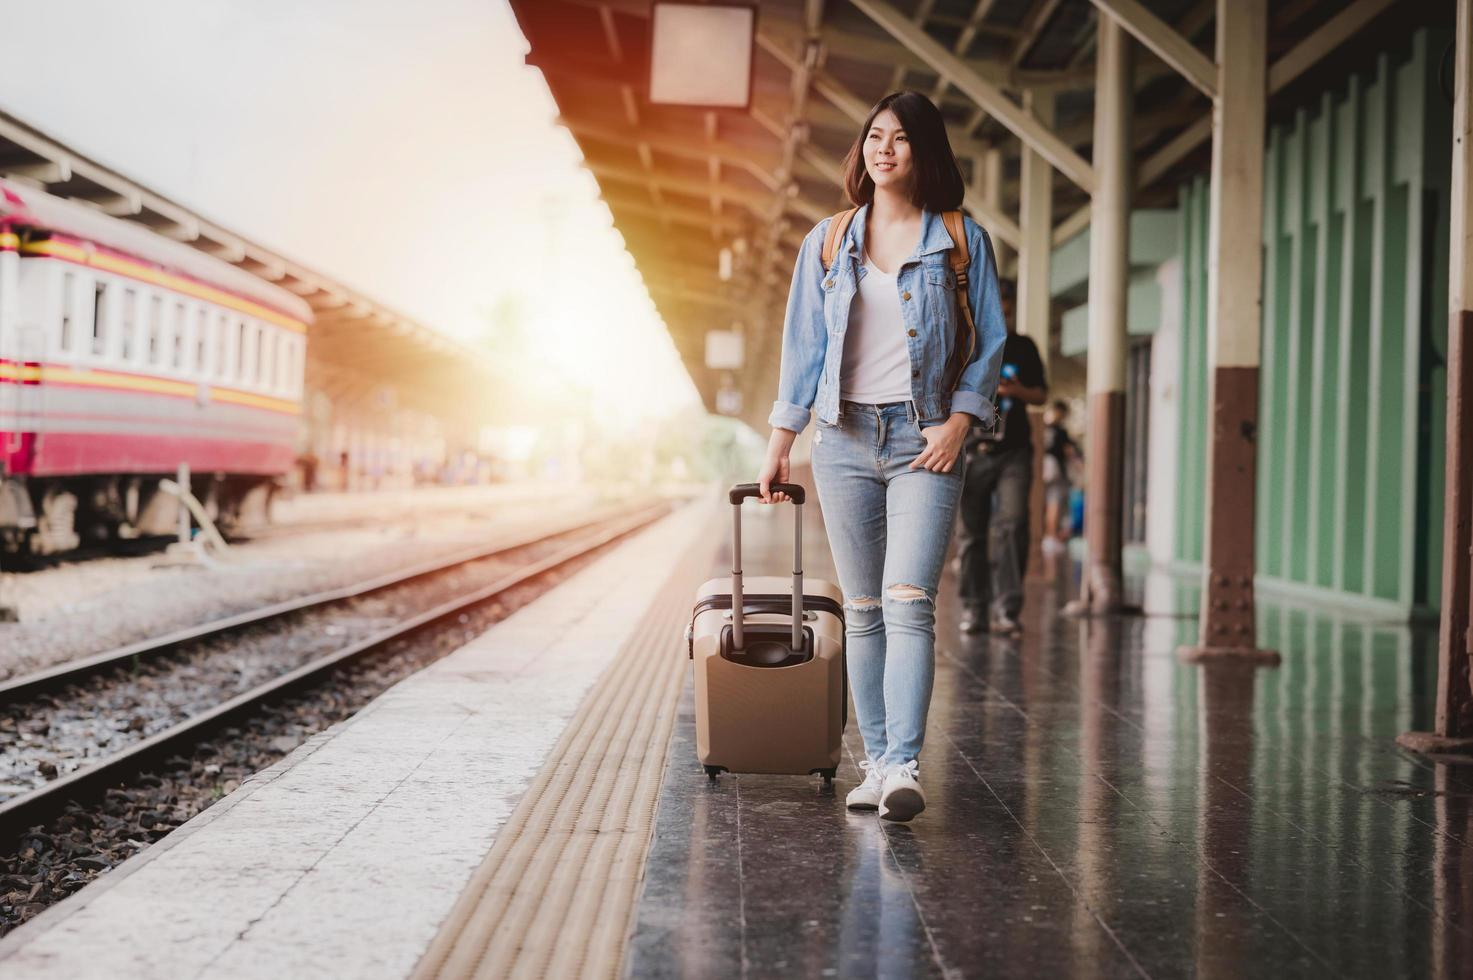 Woman with luggage at train station photo